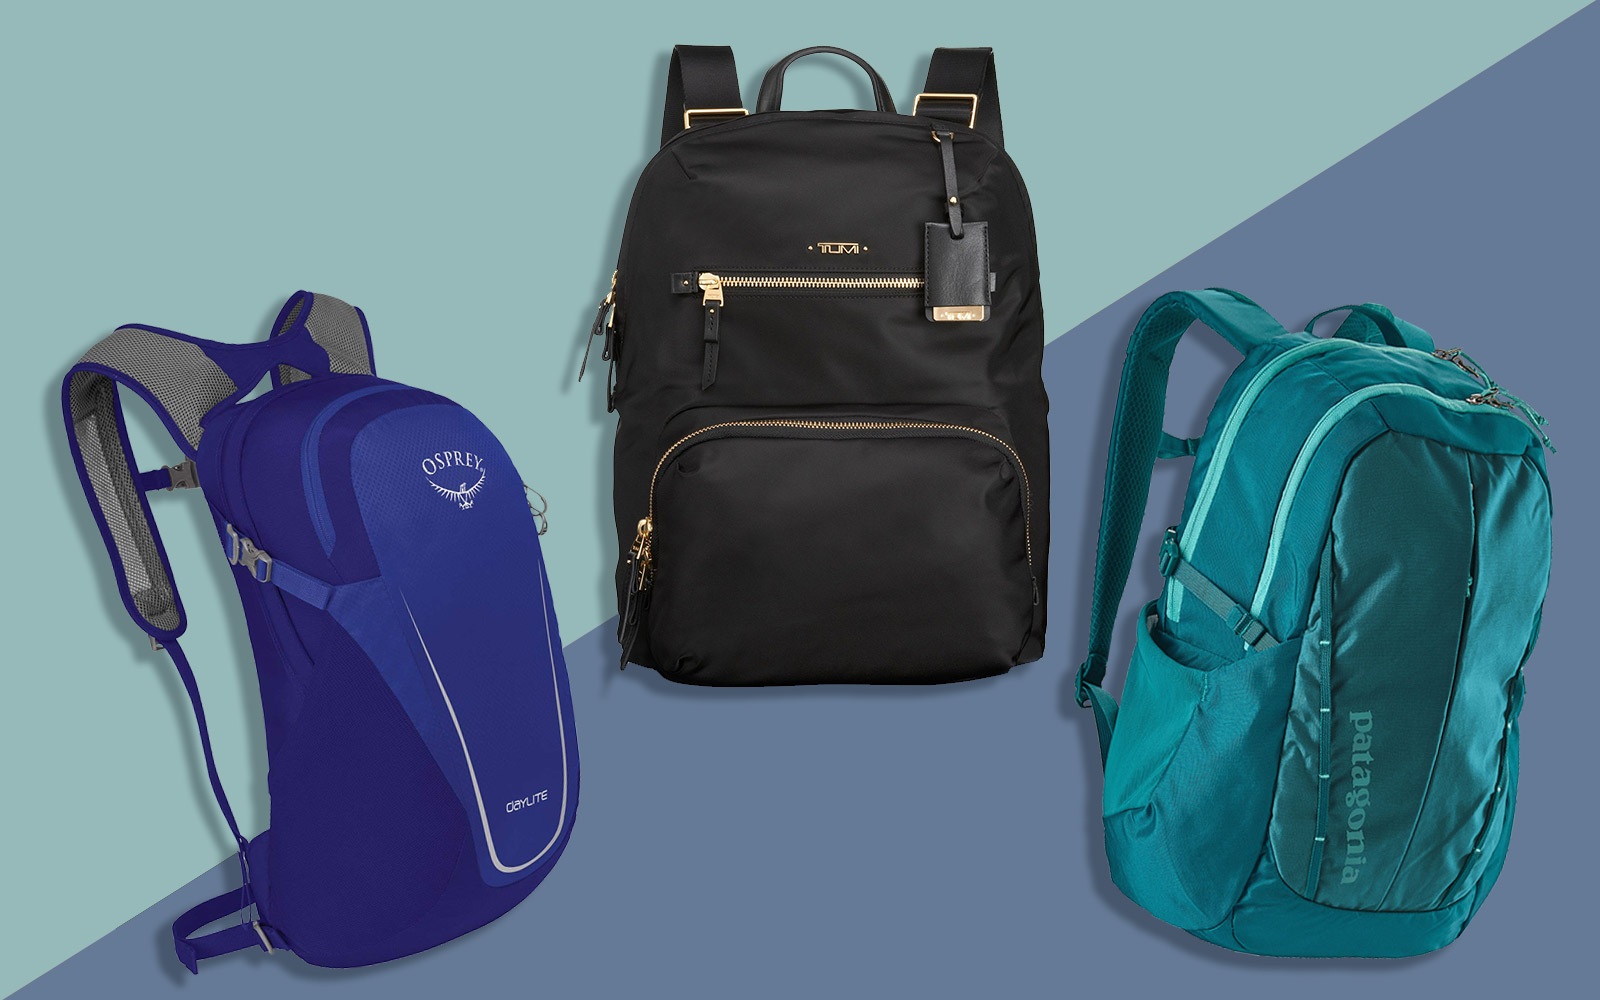 The Best Daypacks for Travel in 2019